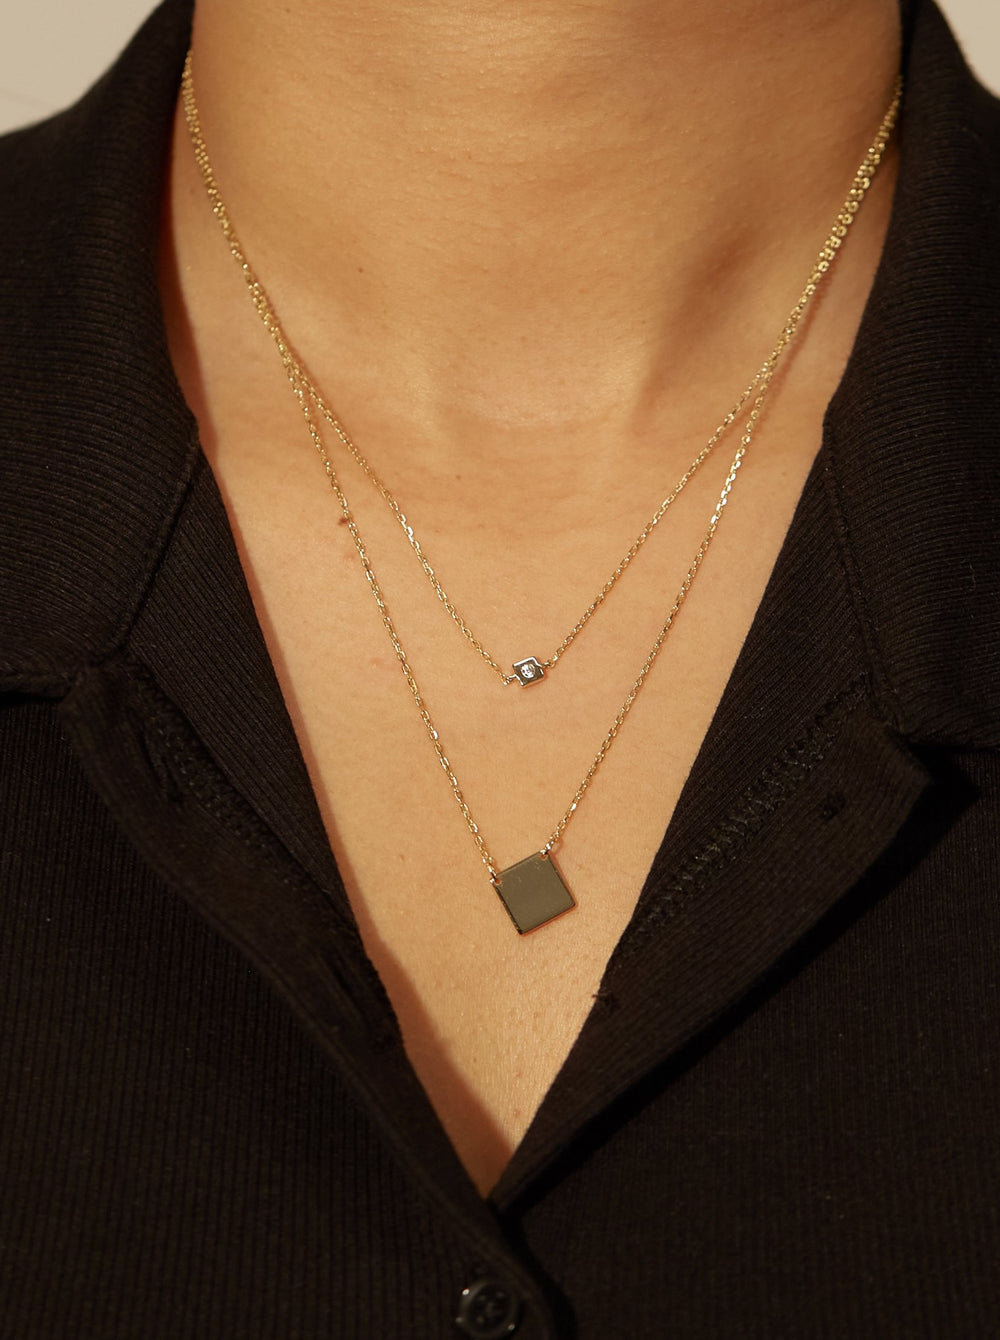 THE DOUBLE SQUARE PENDANT NECKLACE